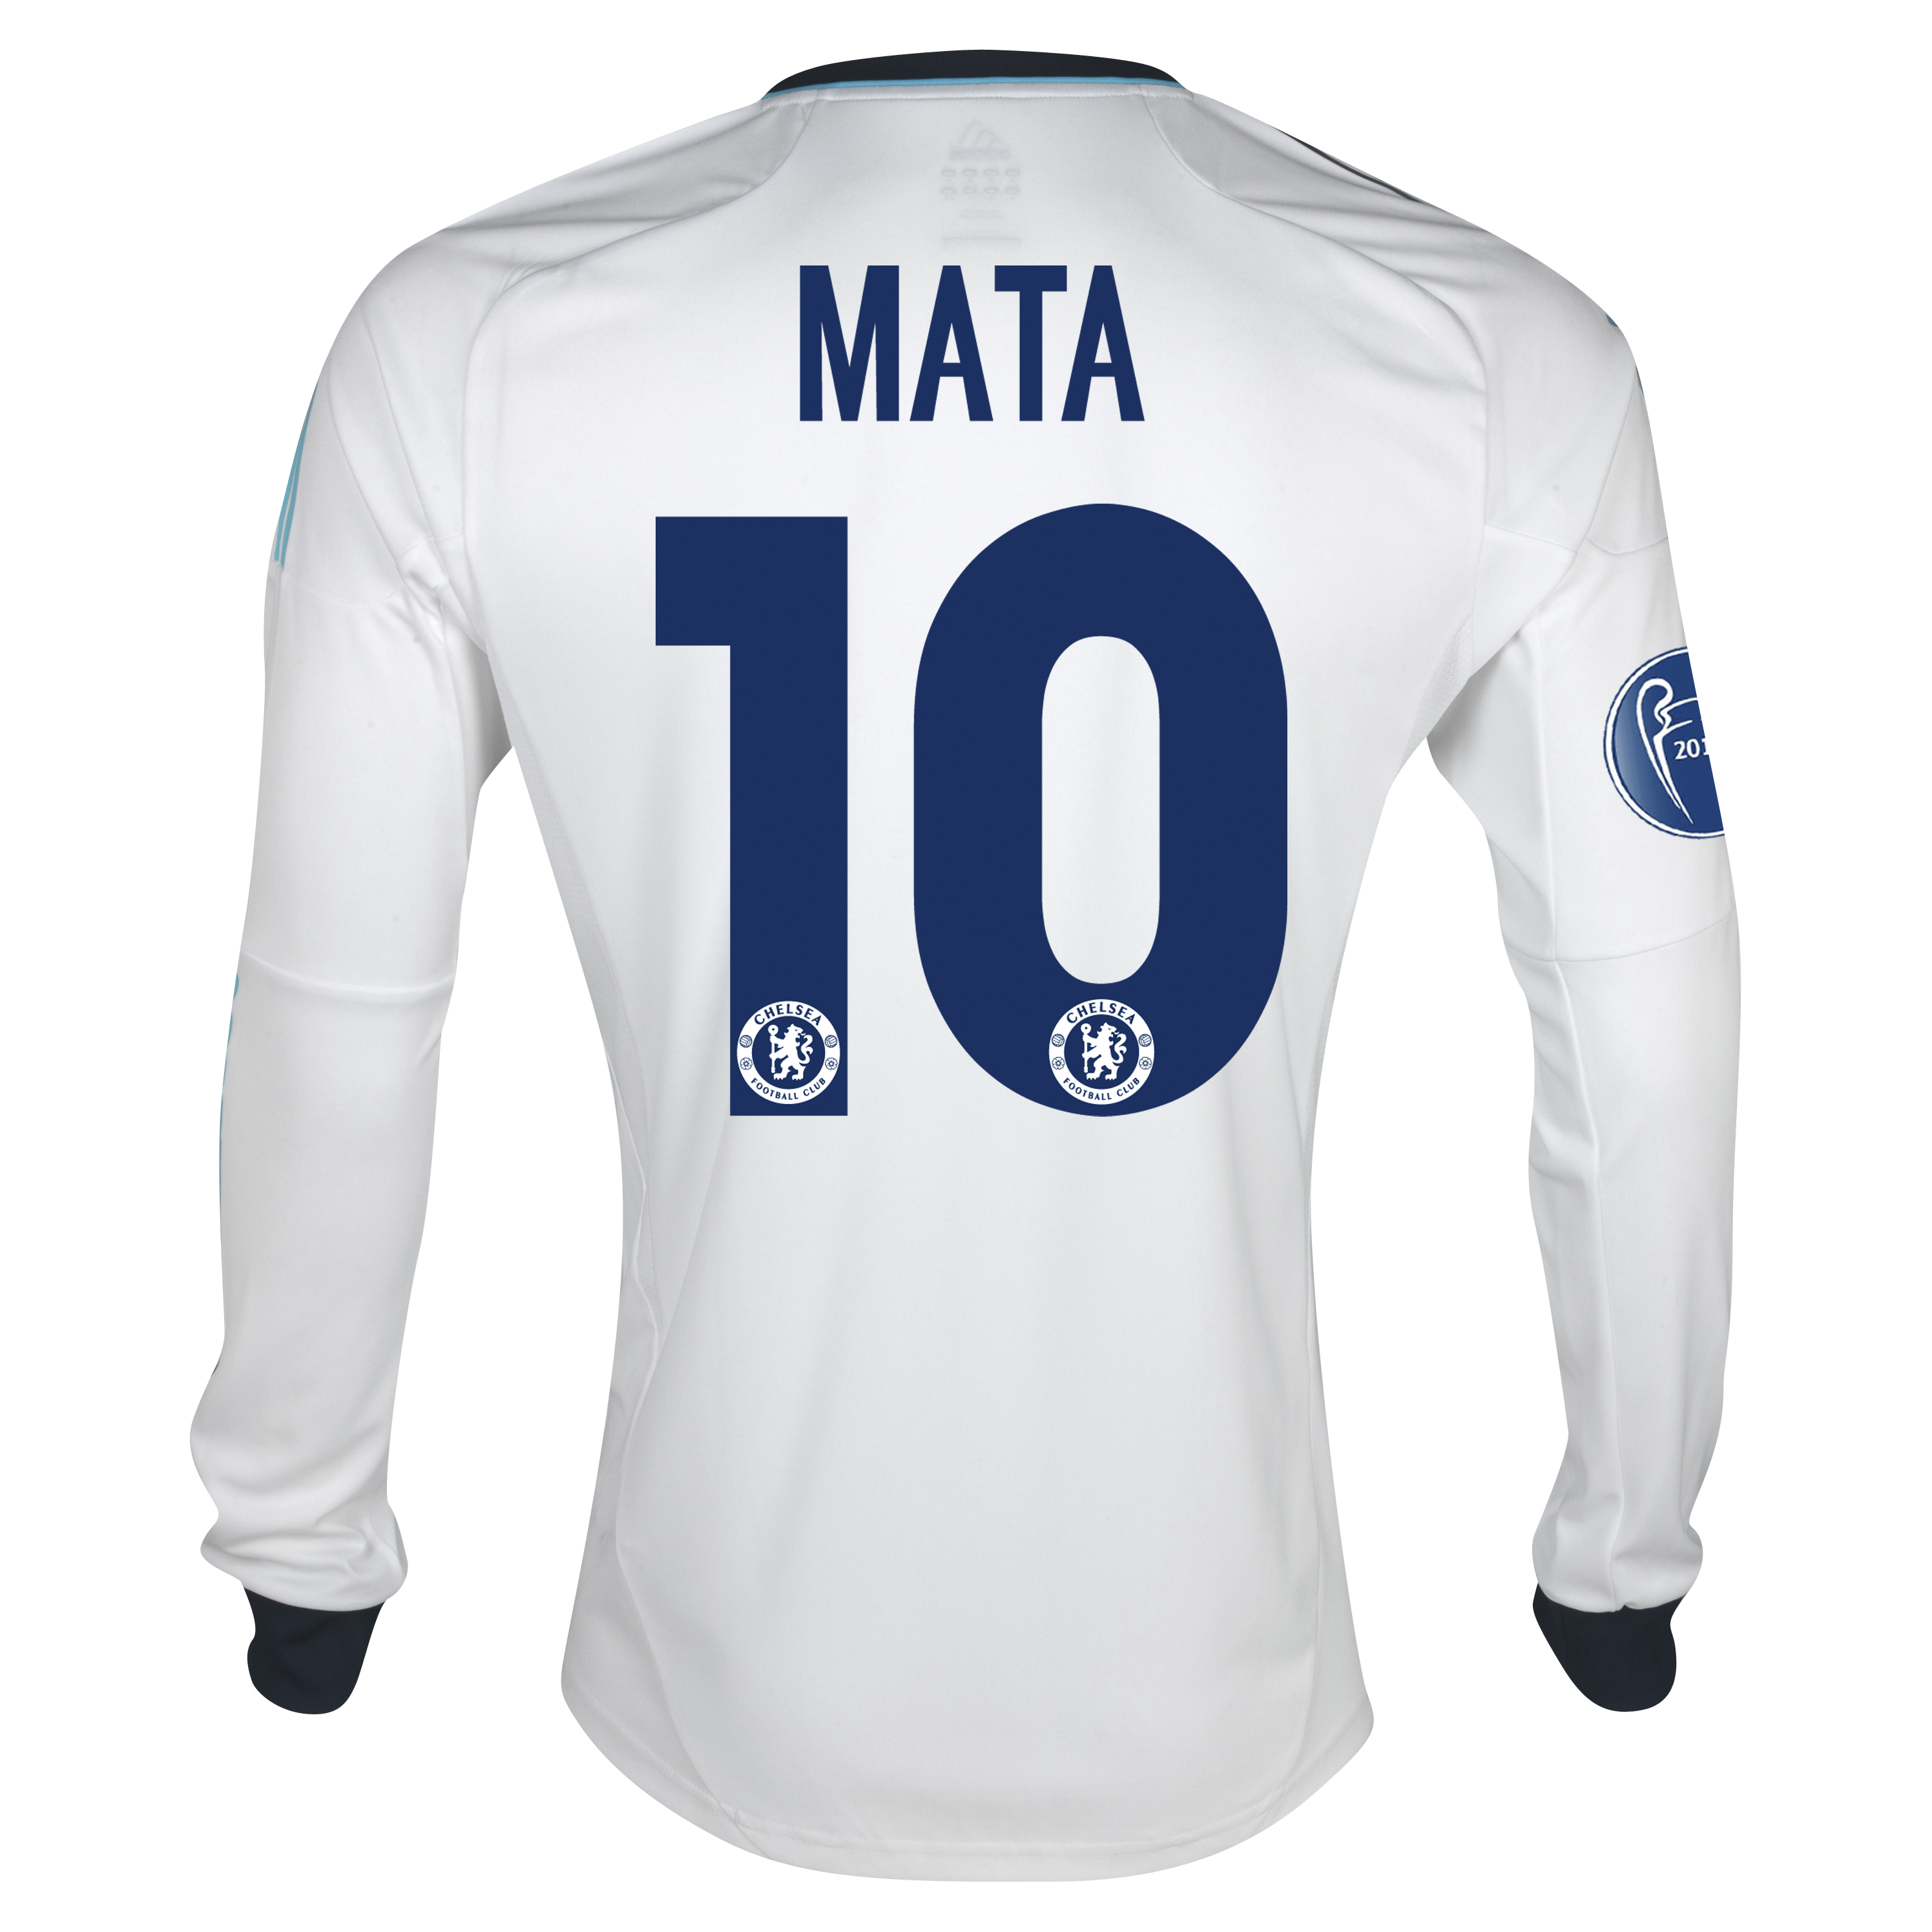 Chelsea UEFA Champions League Away Shirt 2012/13 - Long Sleeved - Kids with Mata 10 printing